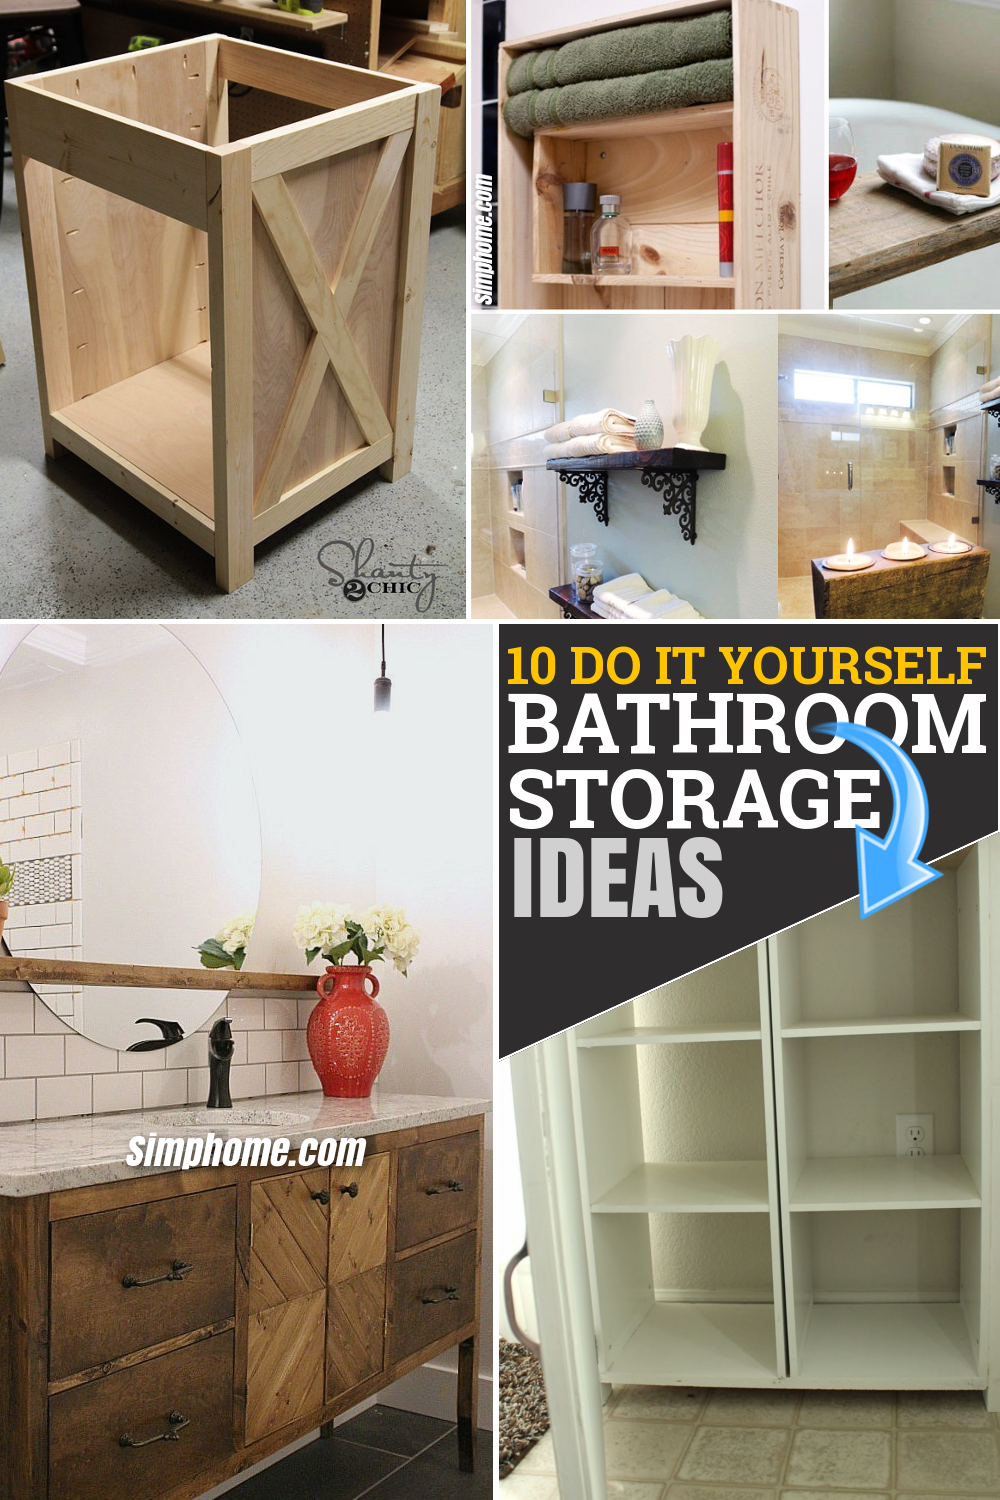 10 DIY Bathroom Storage Furniture via Simphome.com Pinterest Featured Image